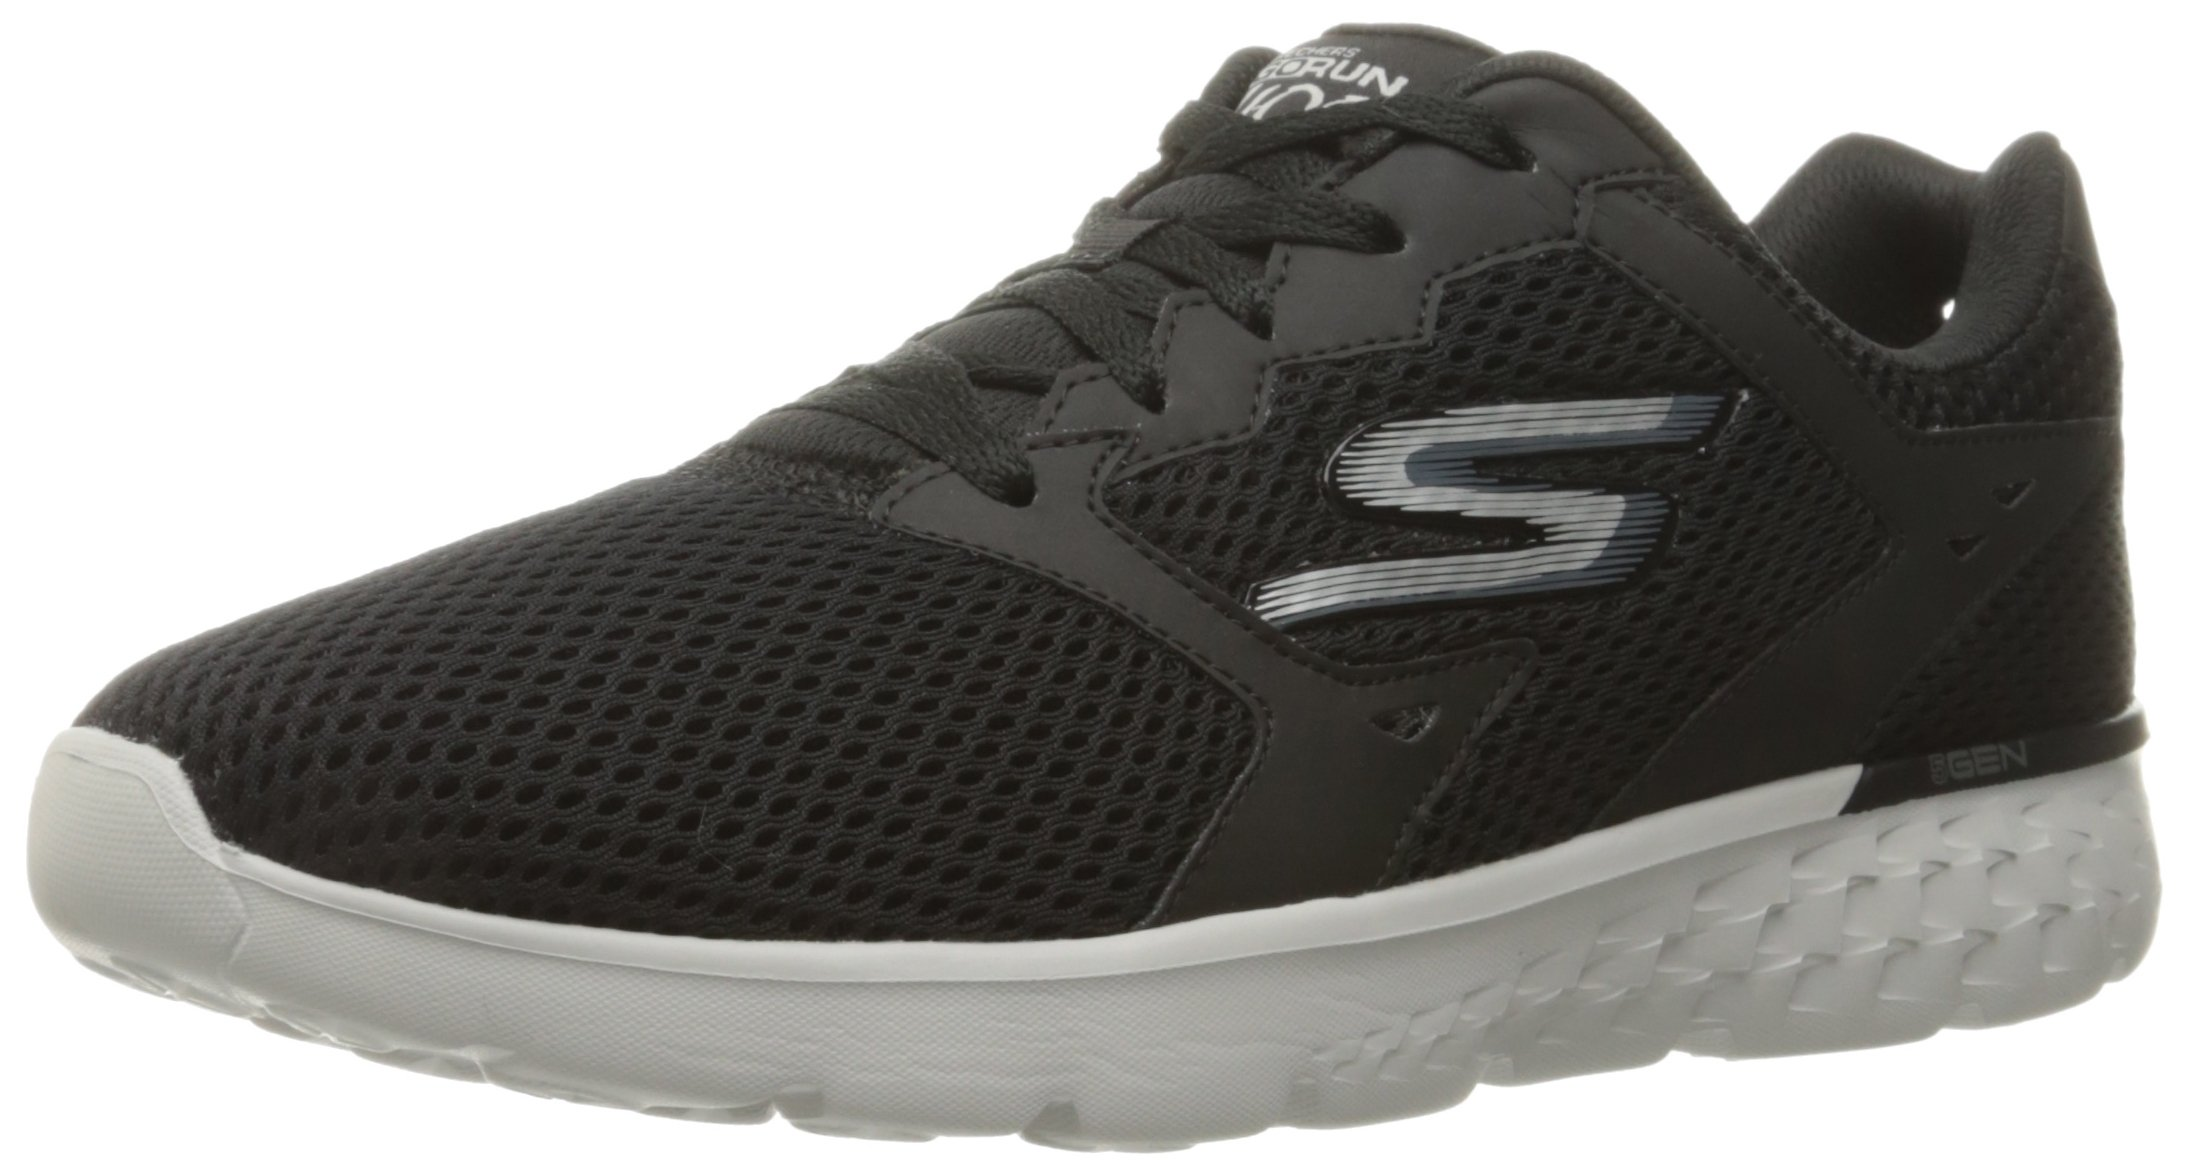 Run De 400Chaussures Running Go HommeNoirblack Skechers gray43 Performance Eu ZiuOPkX